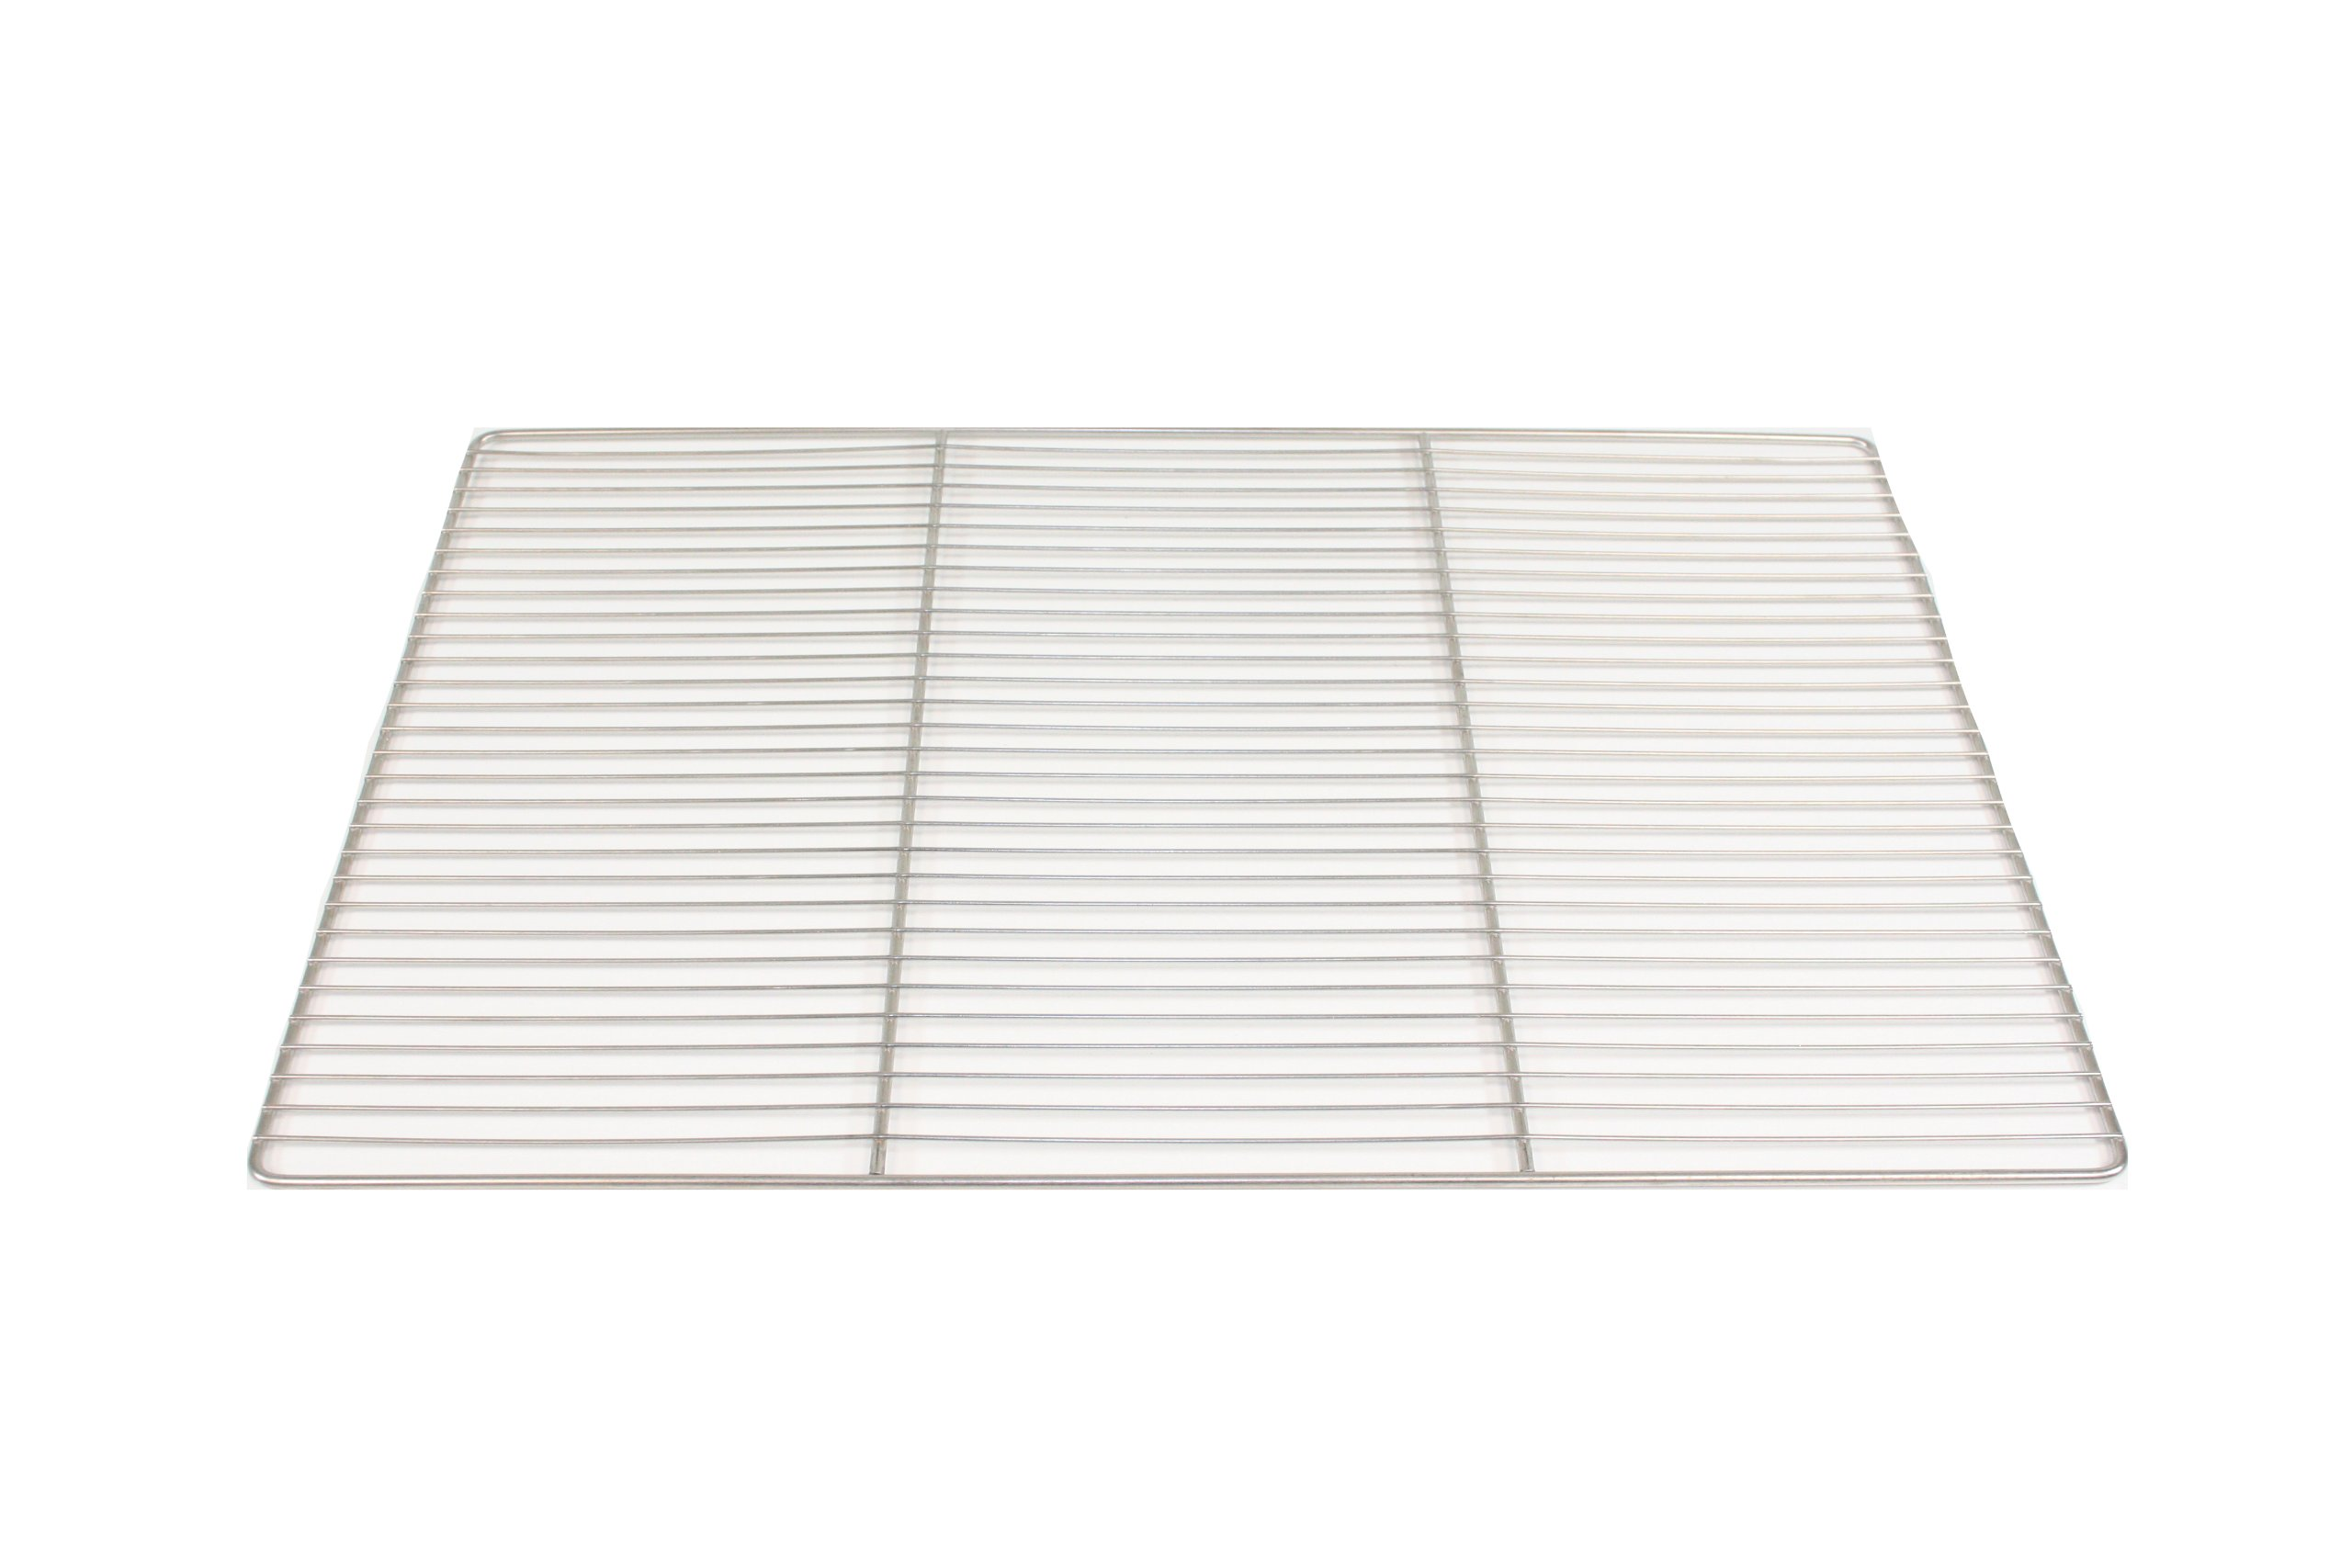 Paderno World Cuisine 25 1/2 Inch by 20 7/8 Inch Stainless-steel Cooling Rack with Handles